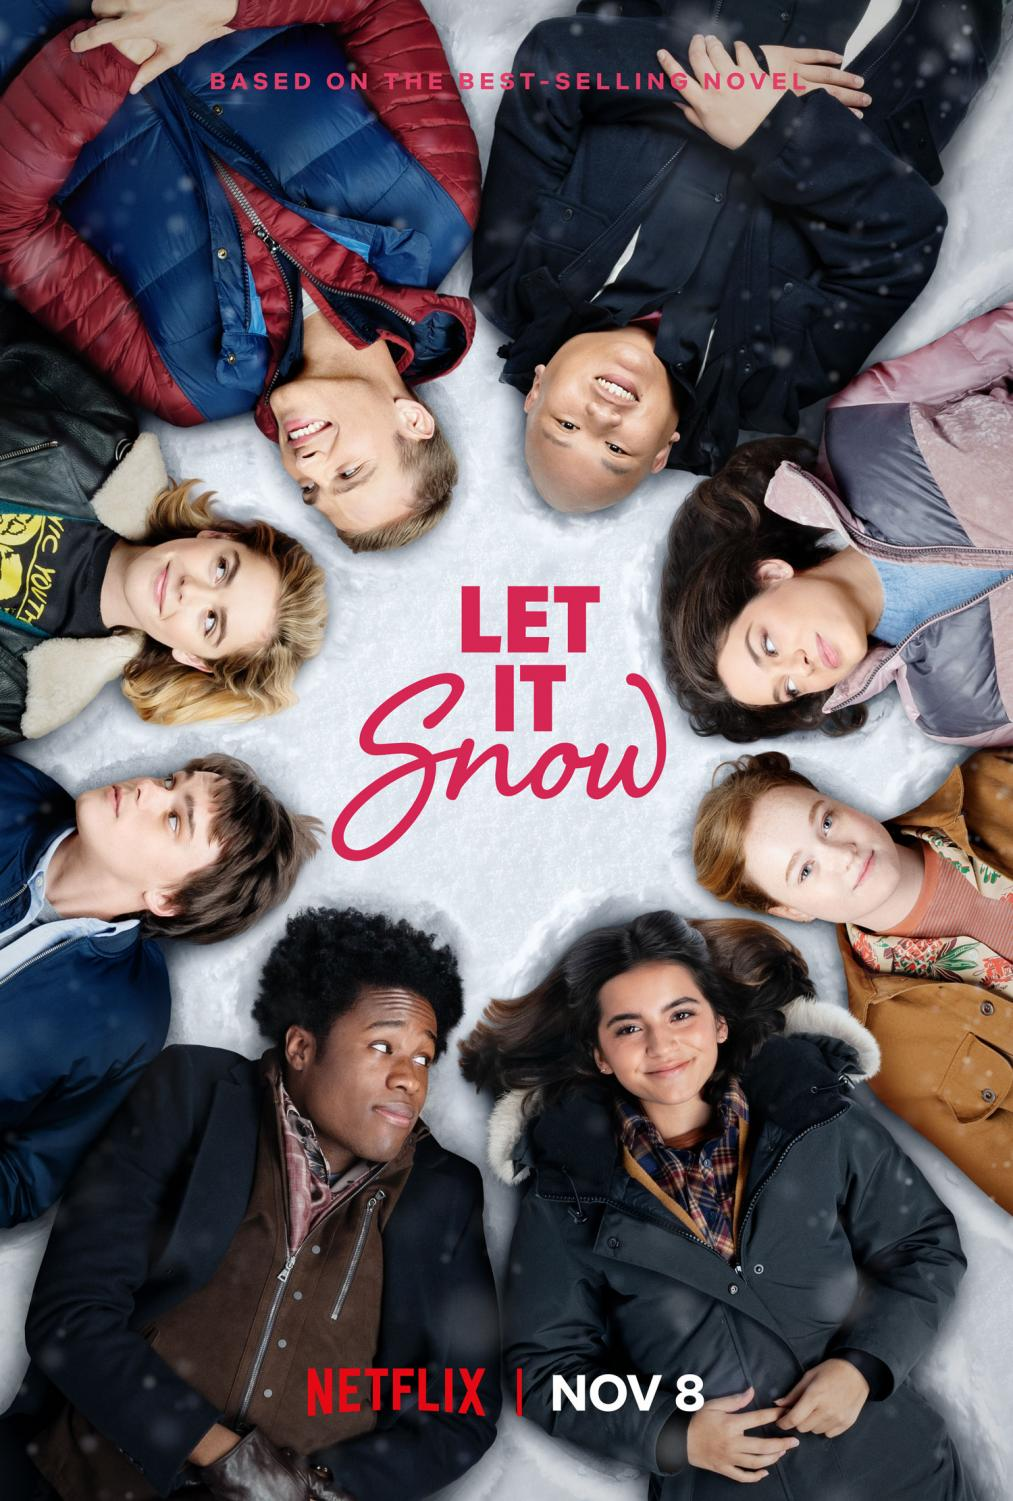 The new holiday movie Let It Snow has recently been released to Netflix.